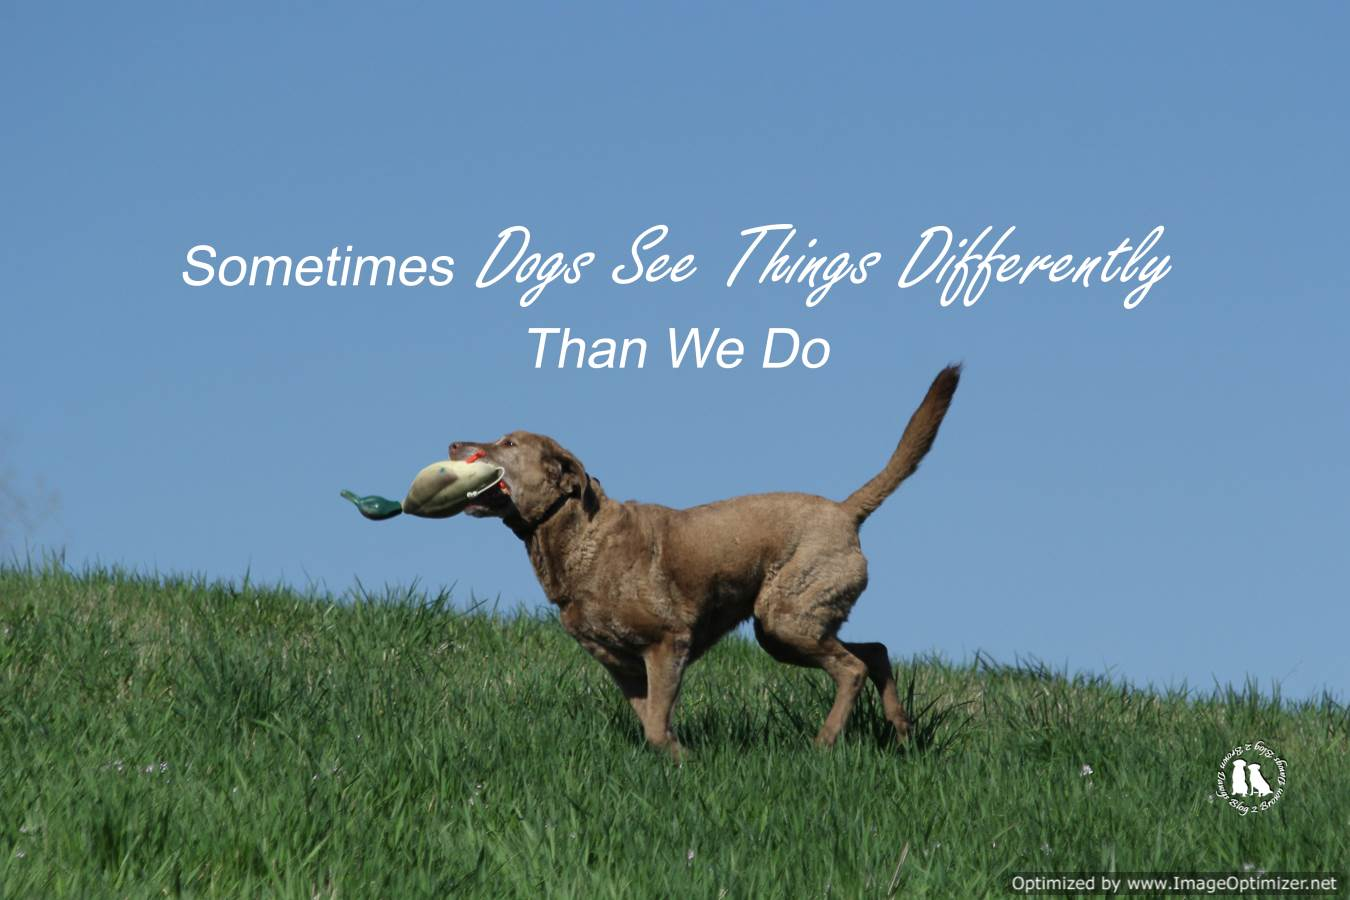 Dogs See Things Differently